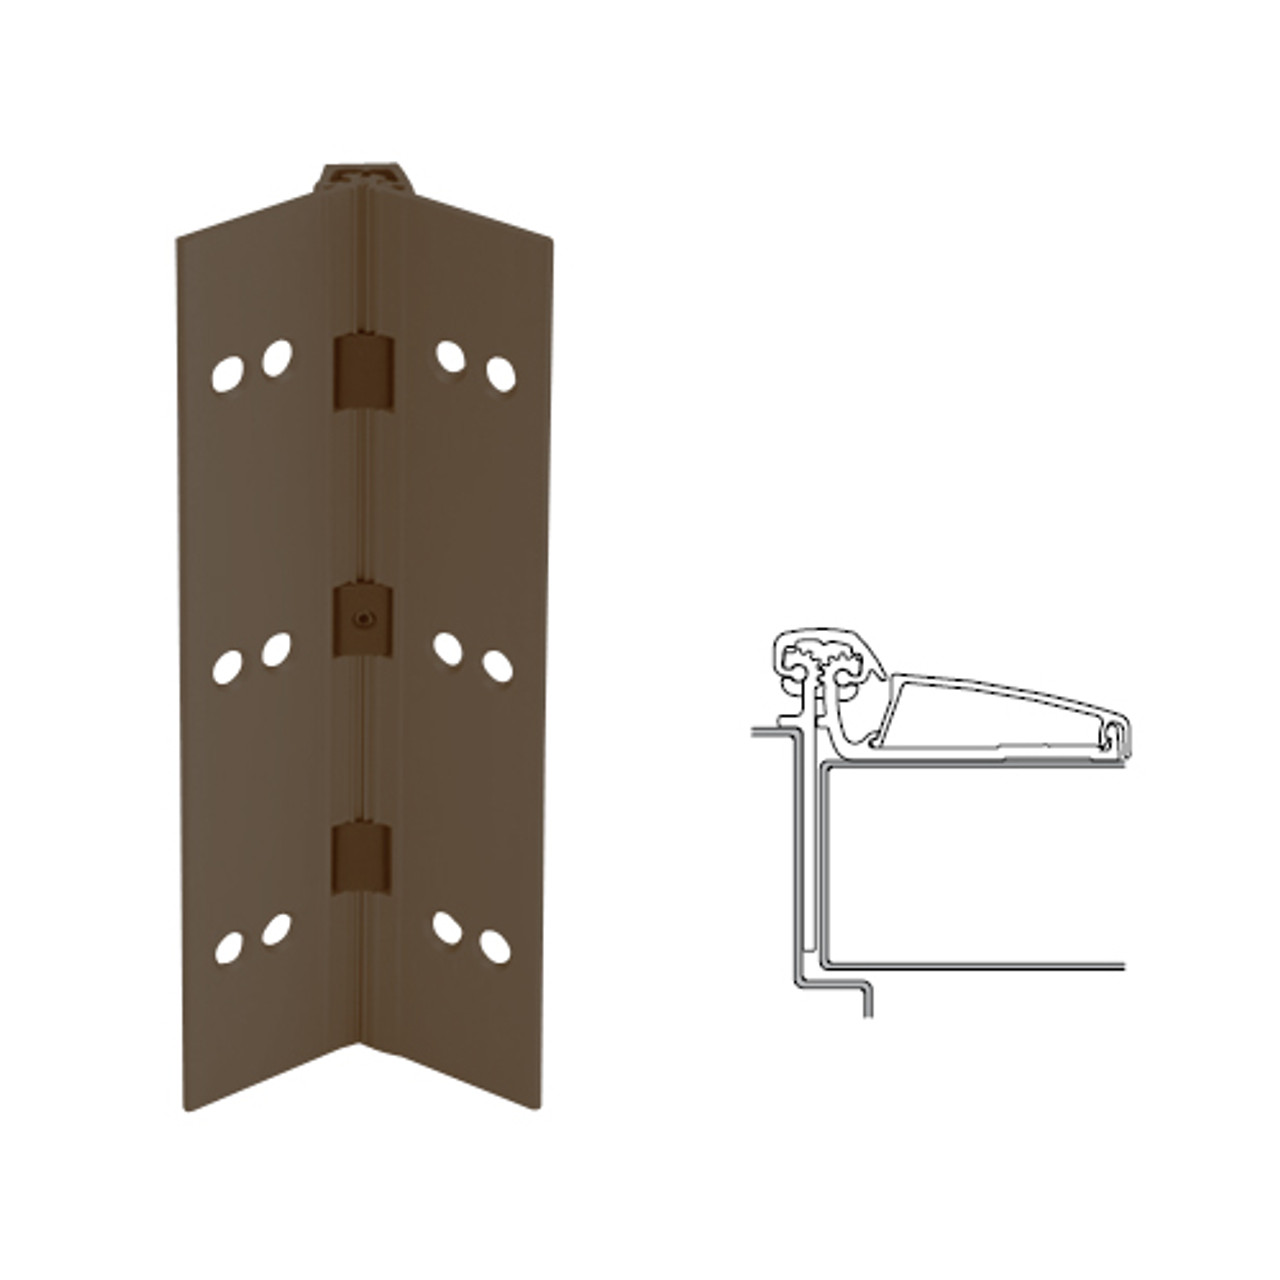 046XY-313AN-85-SECHM IVES Adjustable Half Surface Continuous Geared Hinges with Security Screws - Hex Pin Drive in Dark Bronze Anodized